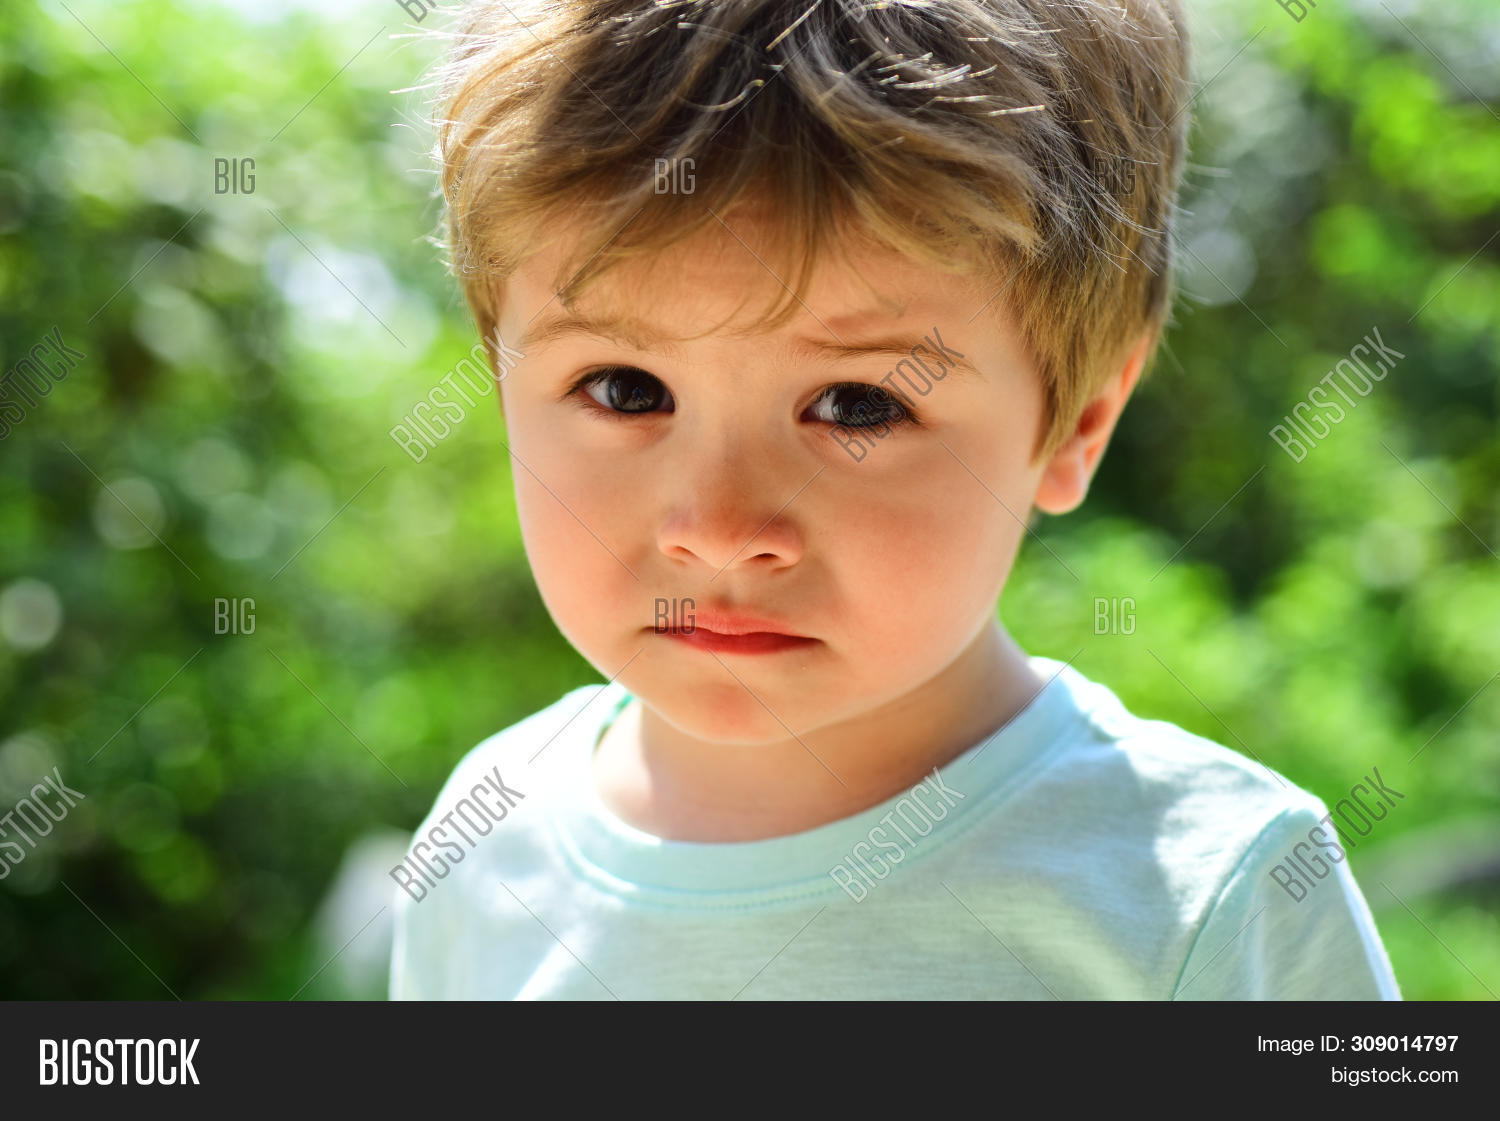 Sad child, close-up portrait. A frustrated child without mood. Sad emotions on a beautiful face. Child in nature. Fatigue after a walk. Sad childish look, disappointment in the eyes.